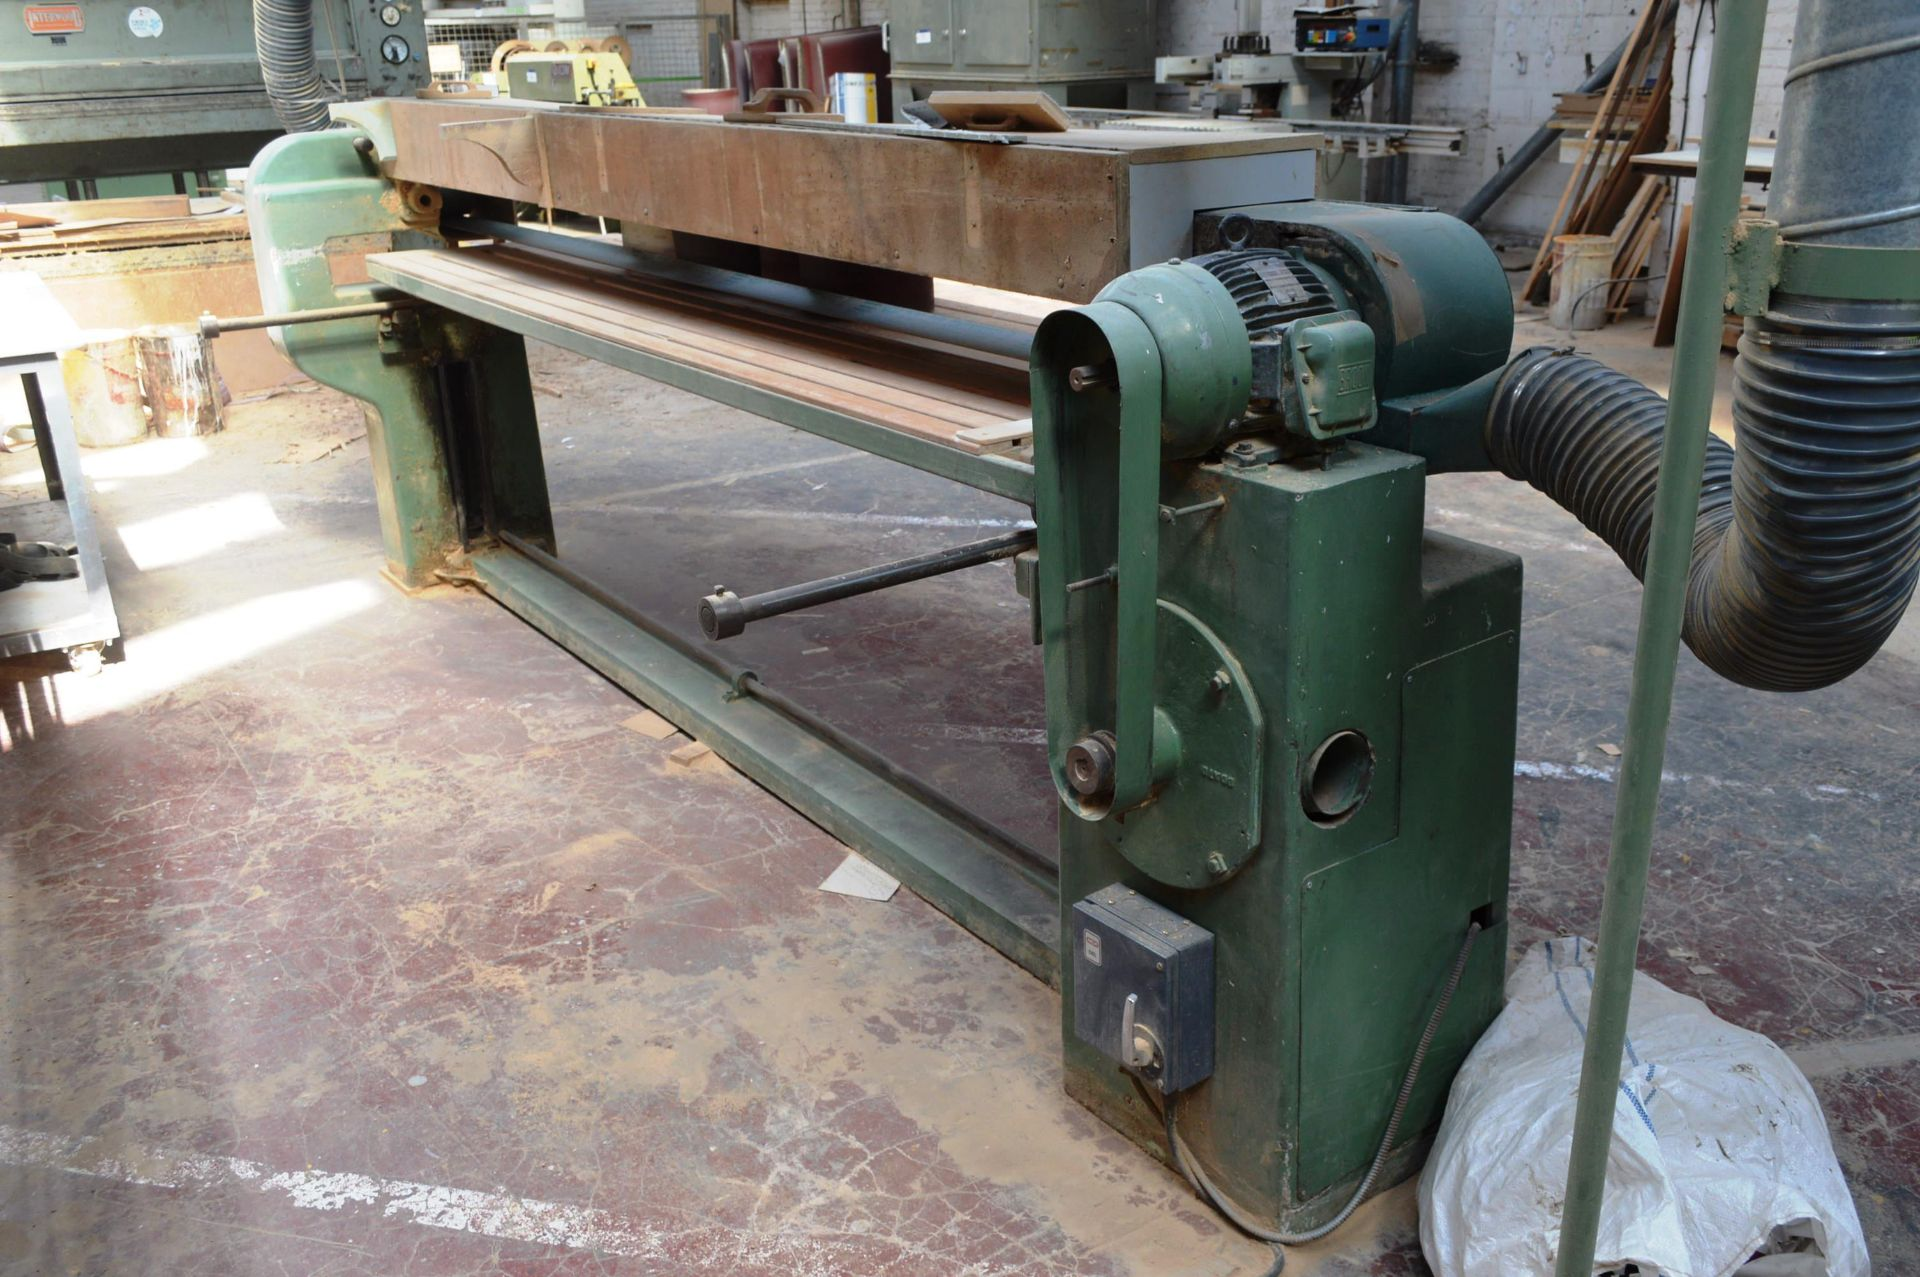 Lot 20 - Dominion DDA OVERHEAD PAD SANDER, serial no. 169, with flexible and spiral wound ducting to and